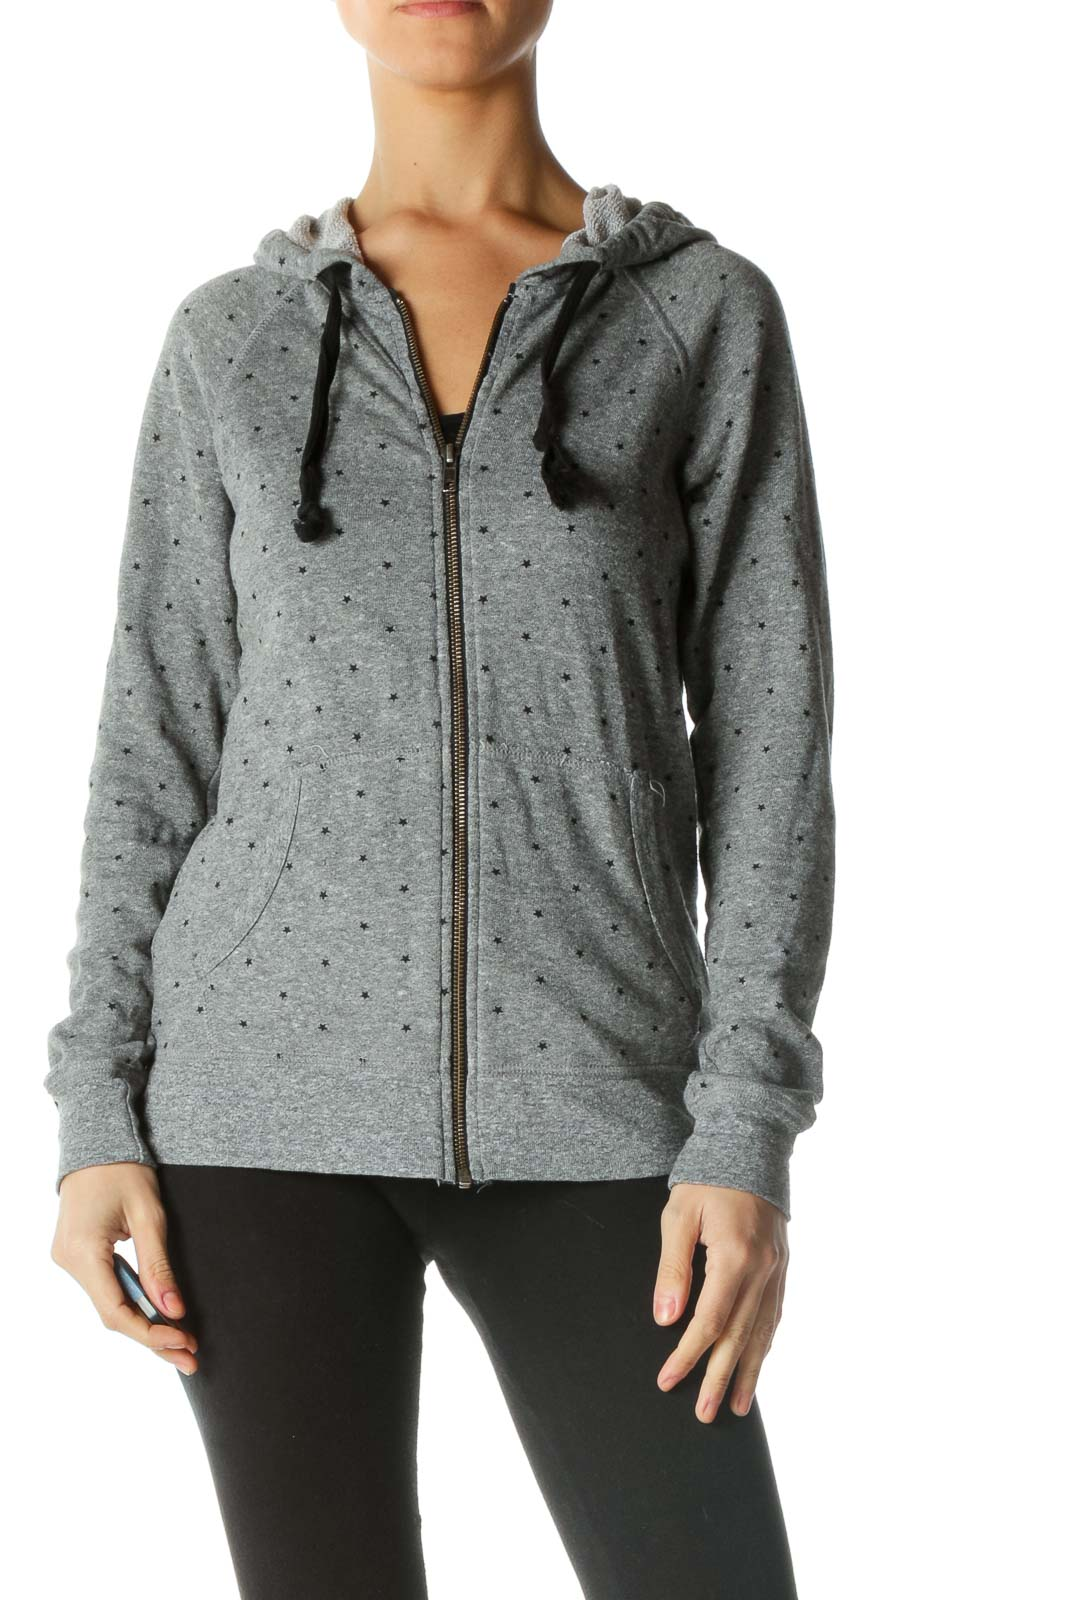 Black and Gray Star Print Jacket Front